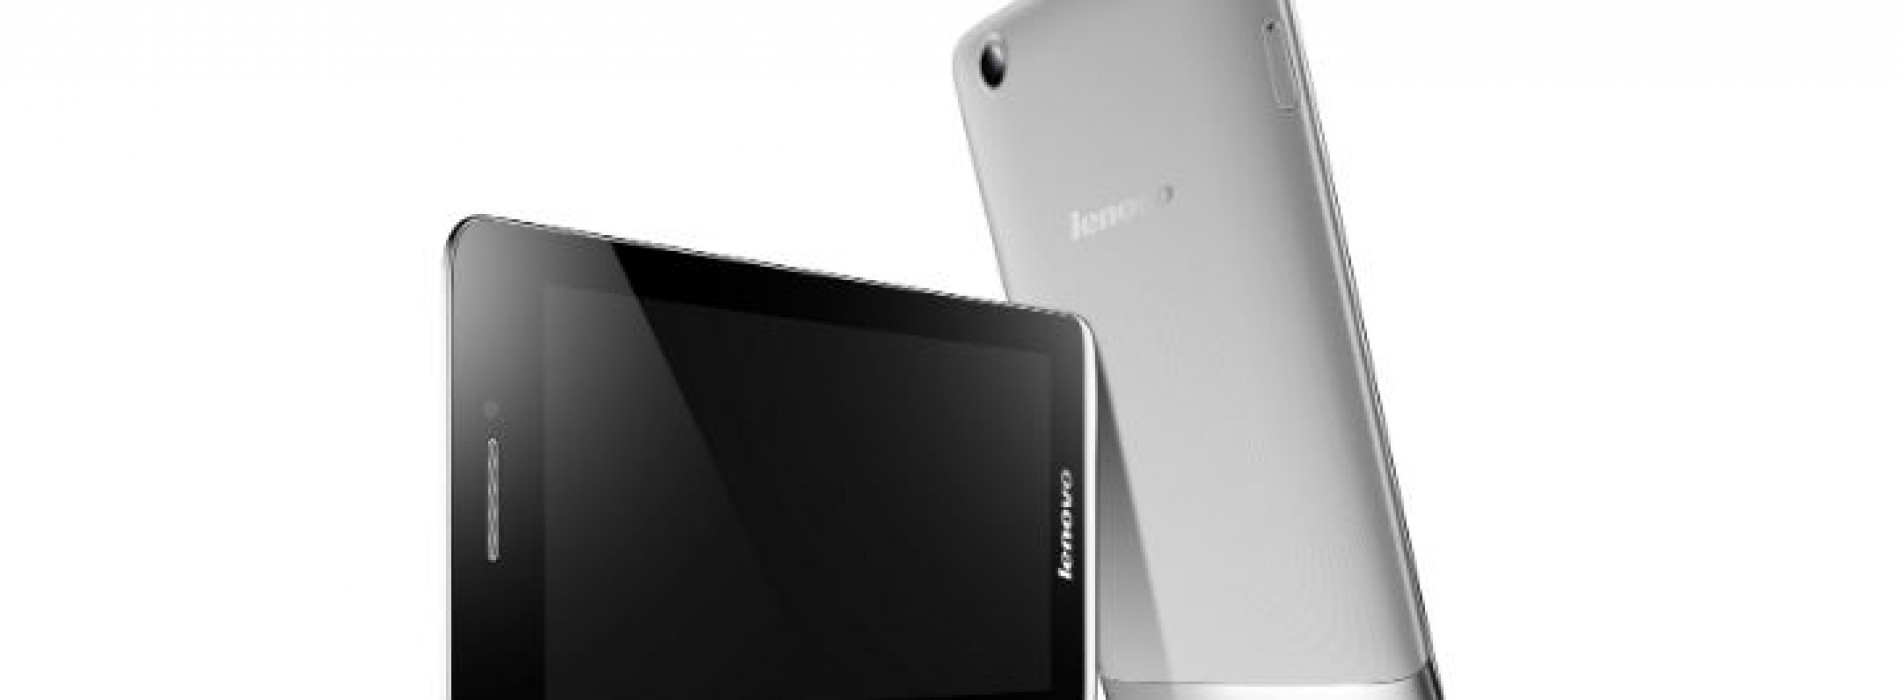 Lenovo intros Vibe X smartphone, S5000 tablet at IFA